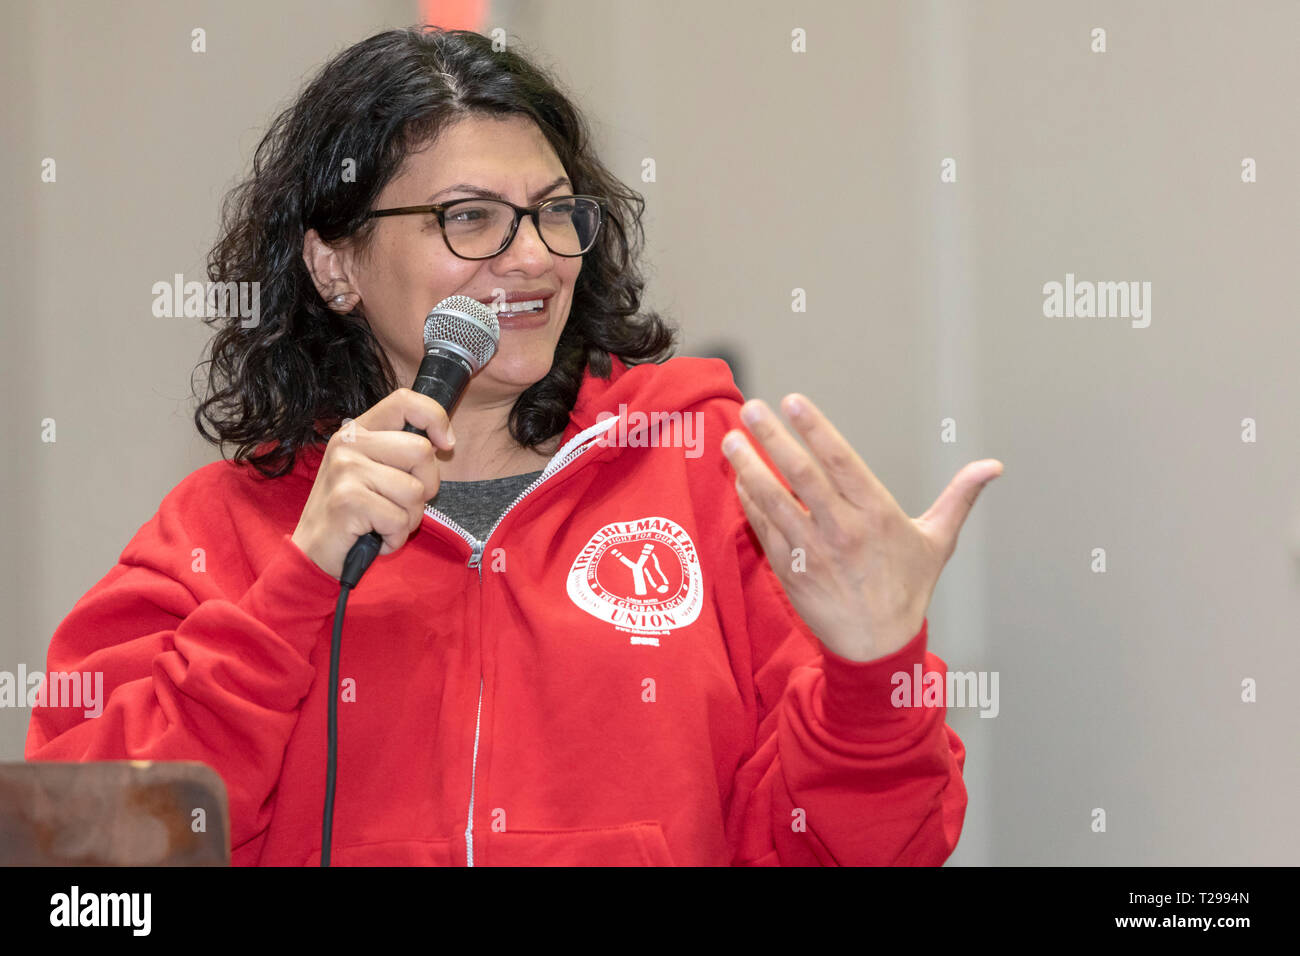 """Detroit, Michigan USA - 30 March 2019 - Congresswoman Rashida Tlaib (D-Mich.) speaks about the Green New Deal at a """"Troublemakers School"""" organized by Labor Notes, a magazine for grass roots labor union activists. Credit: Jim West/Alamy Live News Stock Photo"""